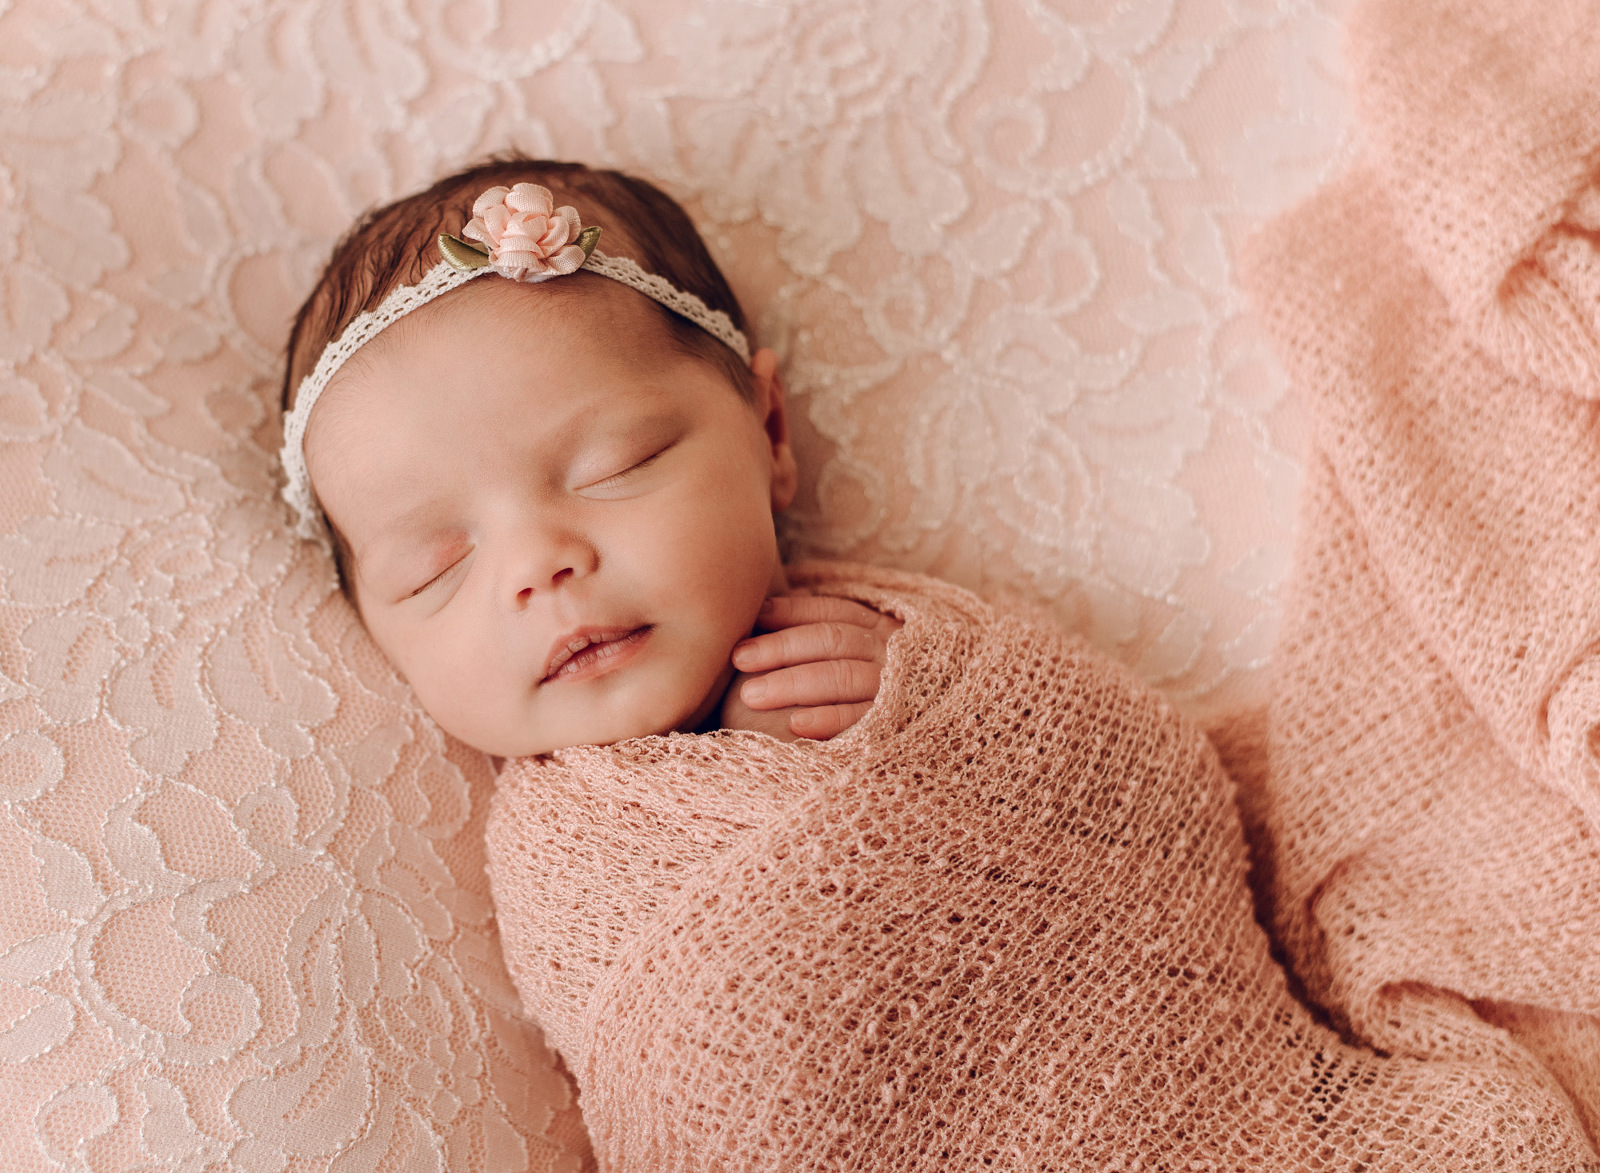 newborn baby girl on peach lace blanket with peach wrap and floral headband